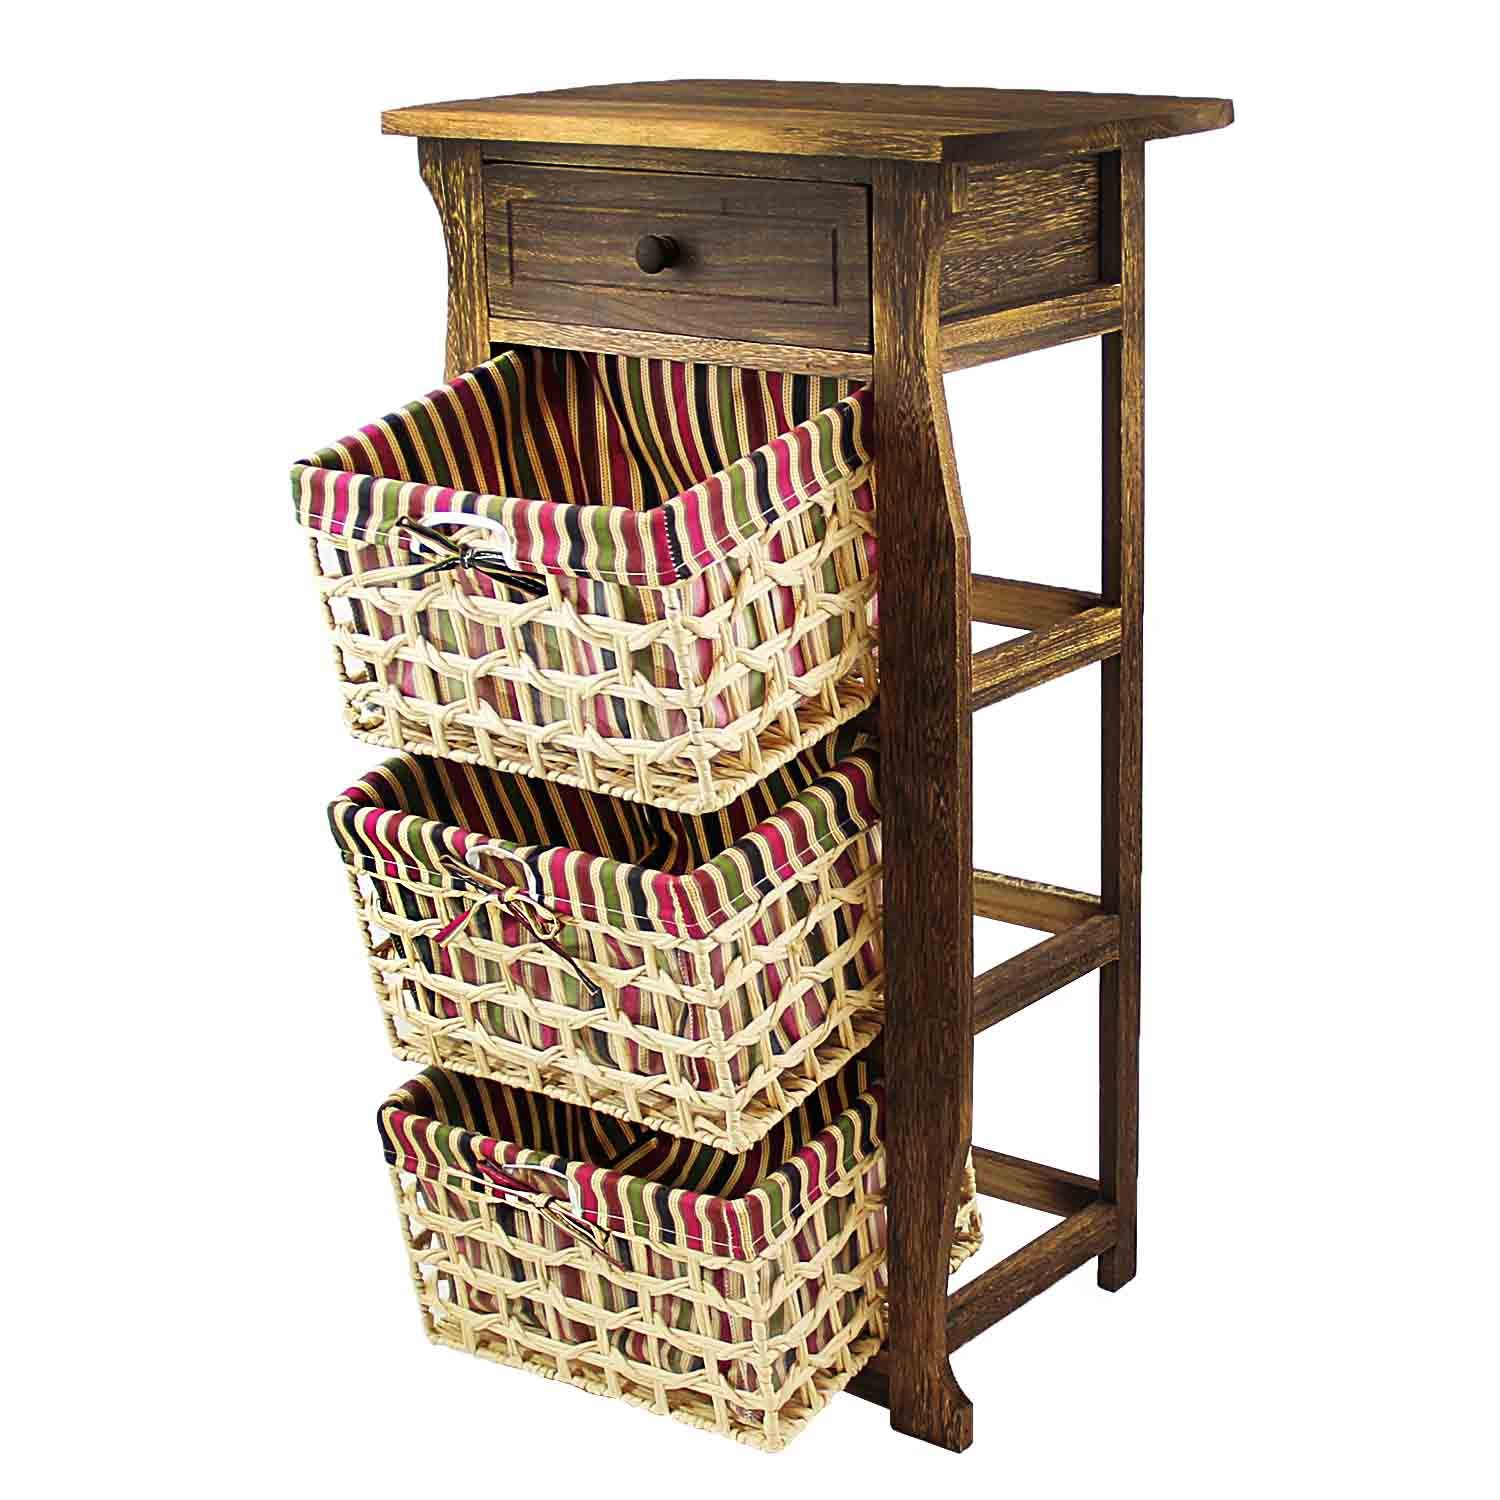 DL-Furniture - Fully Assembled Night Stand With Basket Extra Storage   2 Tier 1 Basket   Finish: Nature